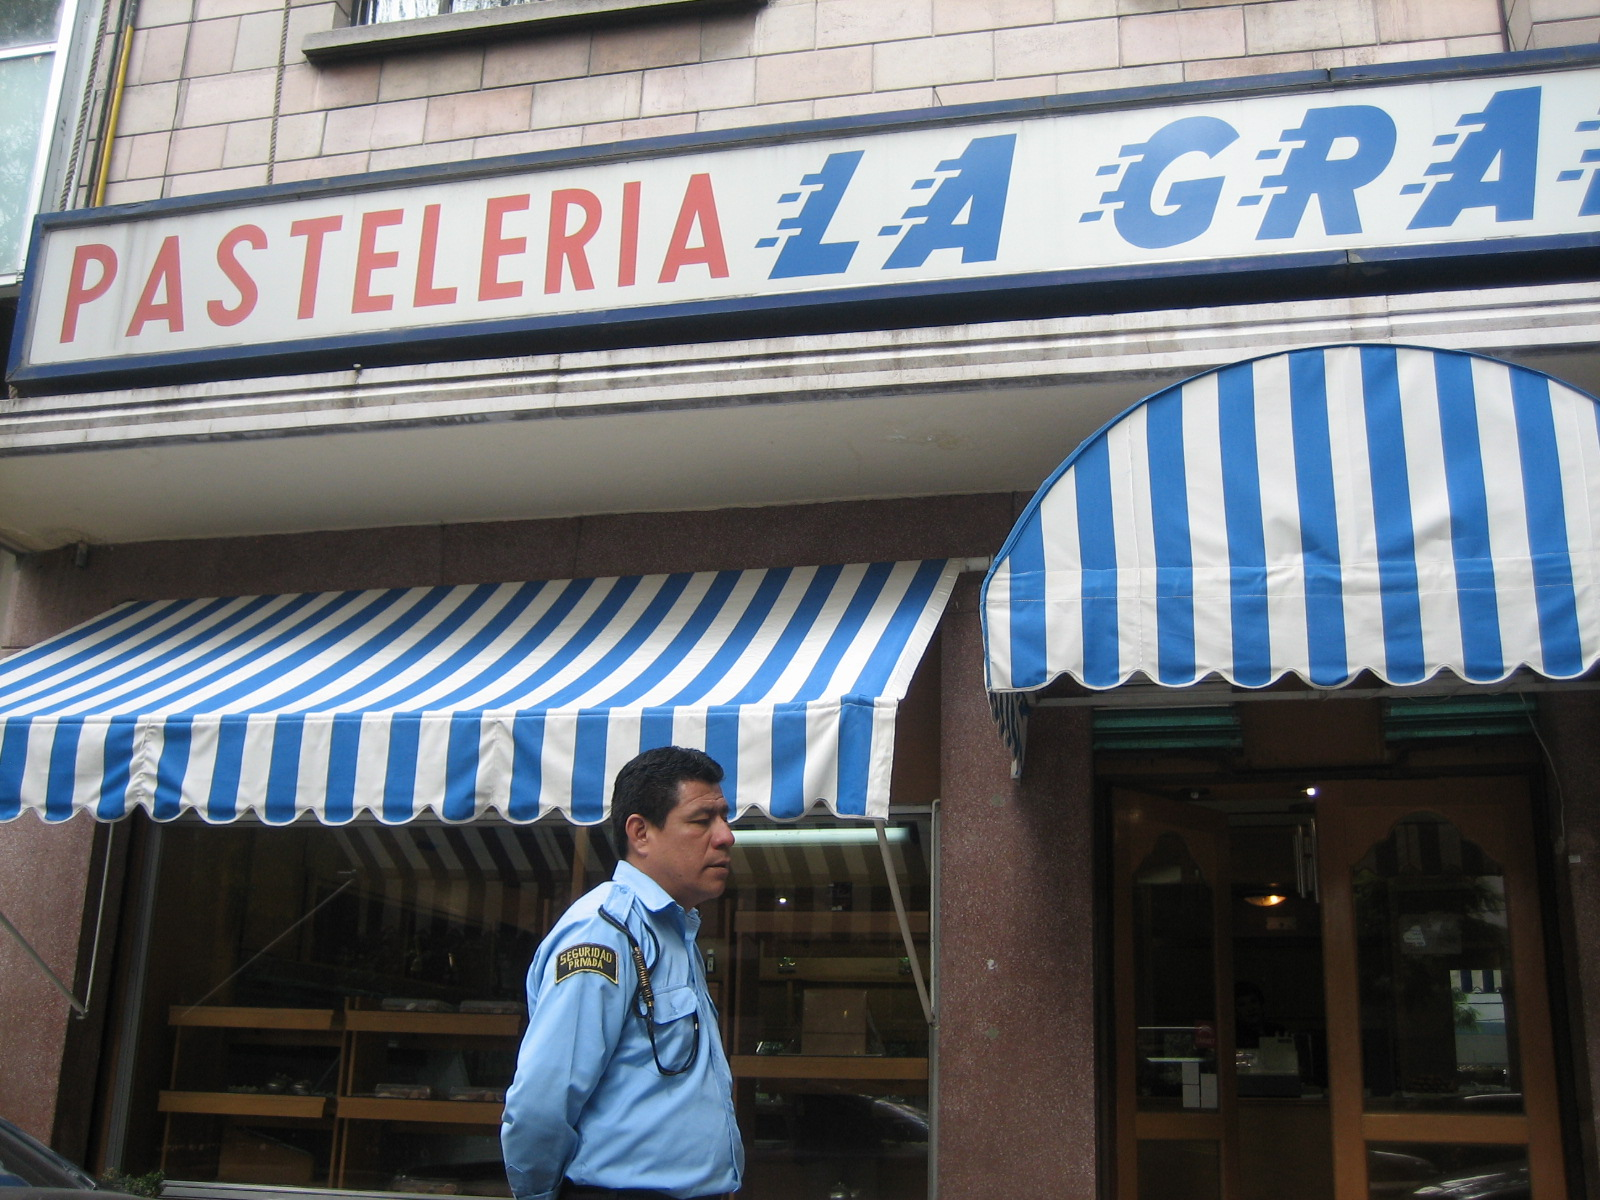 Pasteleria La Gran Via in Col. Condesa, Mexico City